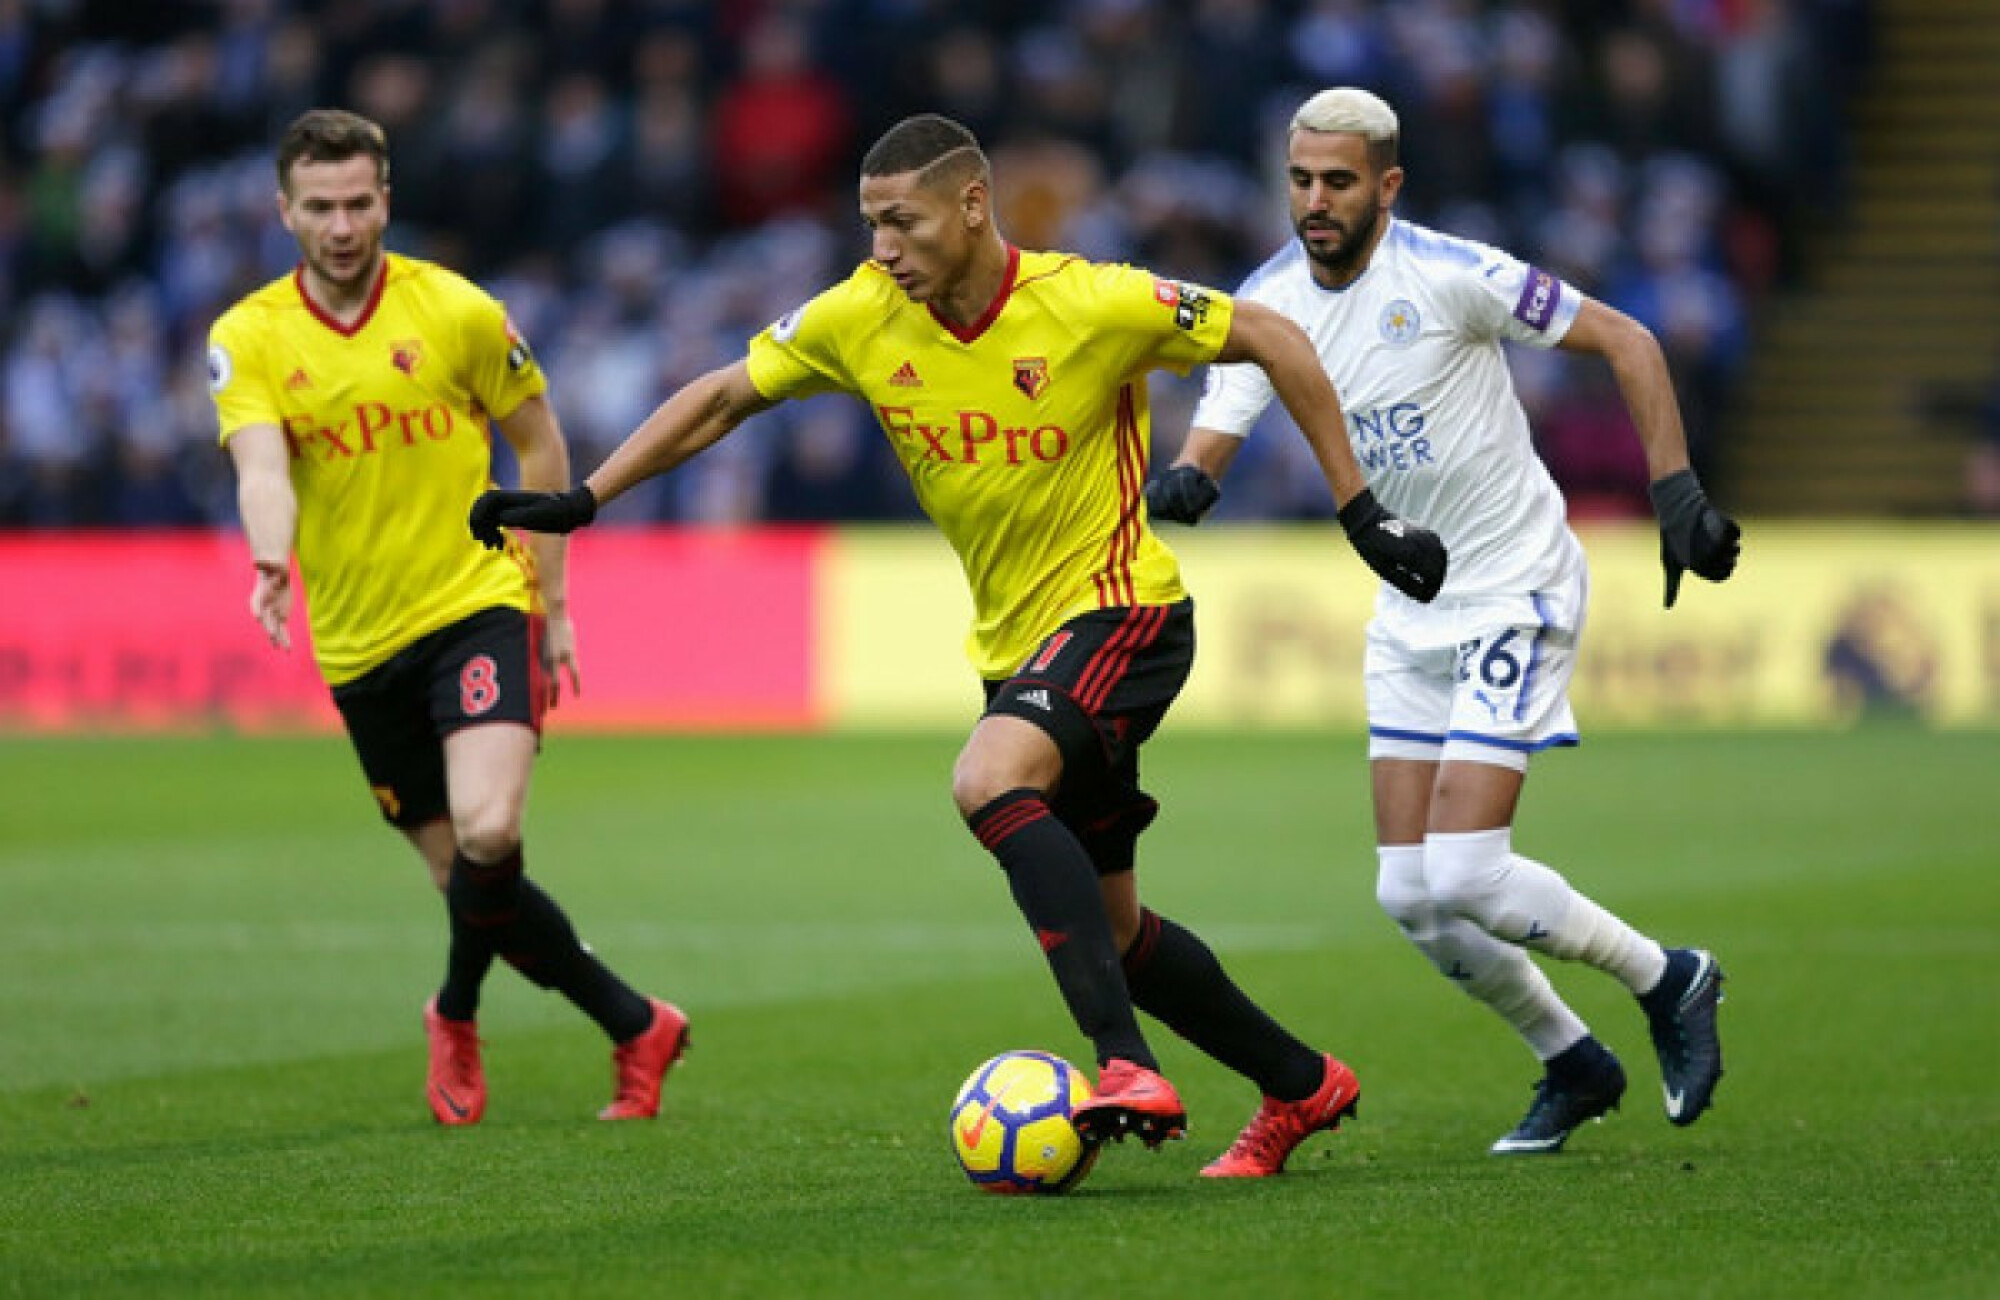 Should Chelsea sign Richarlison or Mahrez?